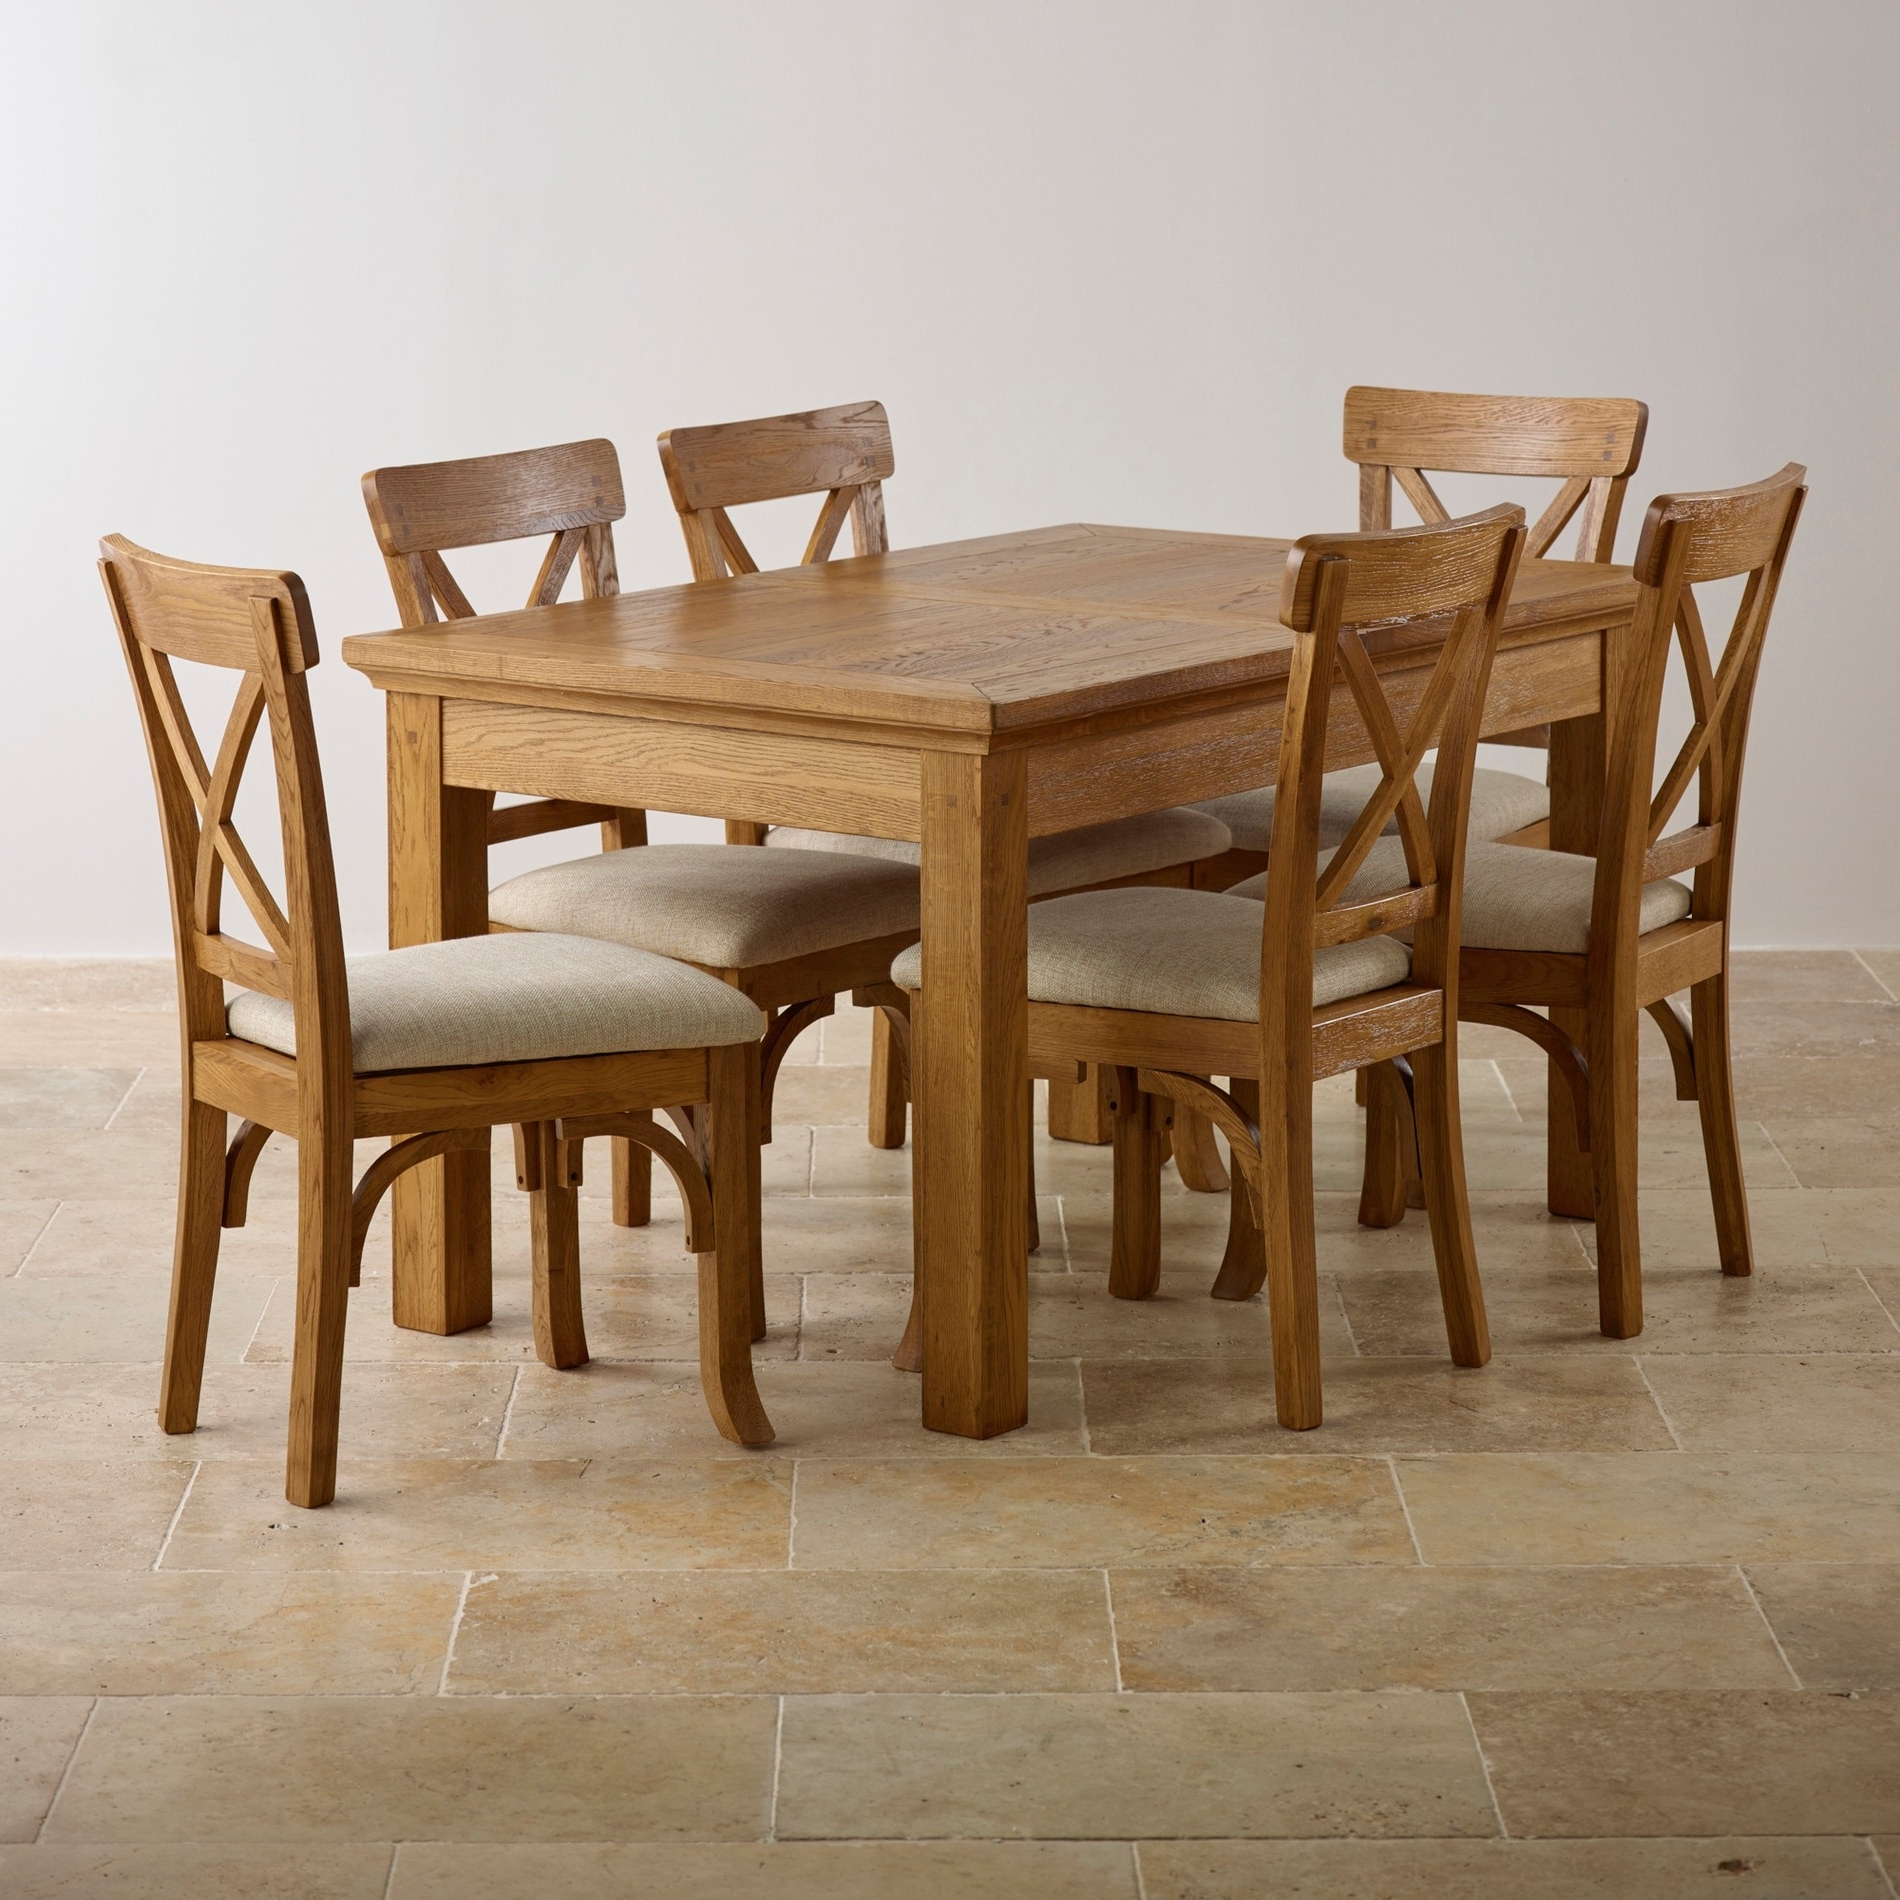 The 28 Awesome 6 Seater Extendable Dining Table – Welovedandelion For Most Current Extendable Dining Tables And 6 Chairs (View 22 of 25)